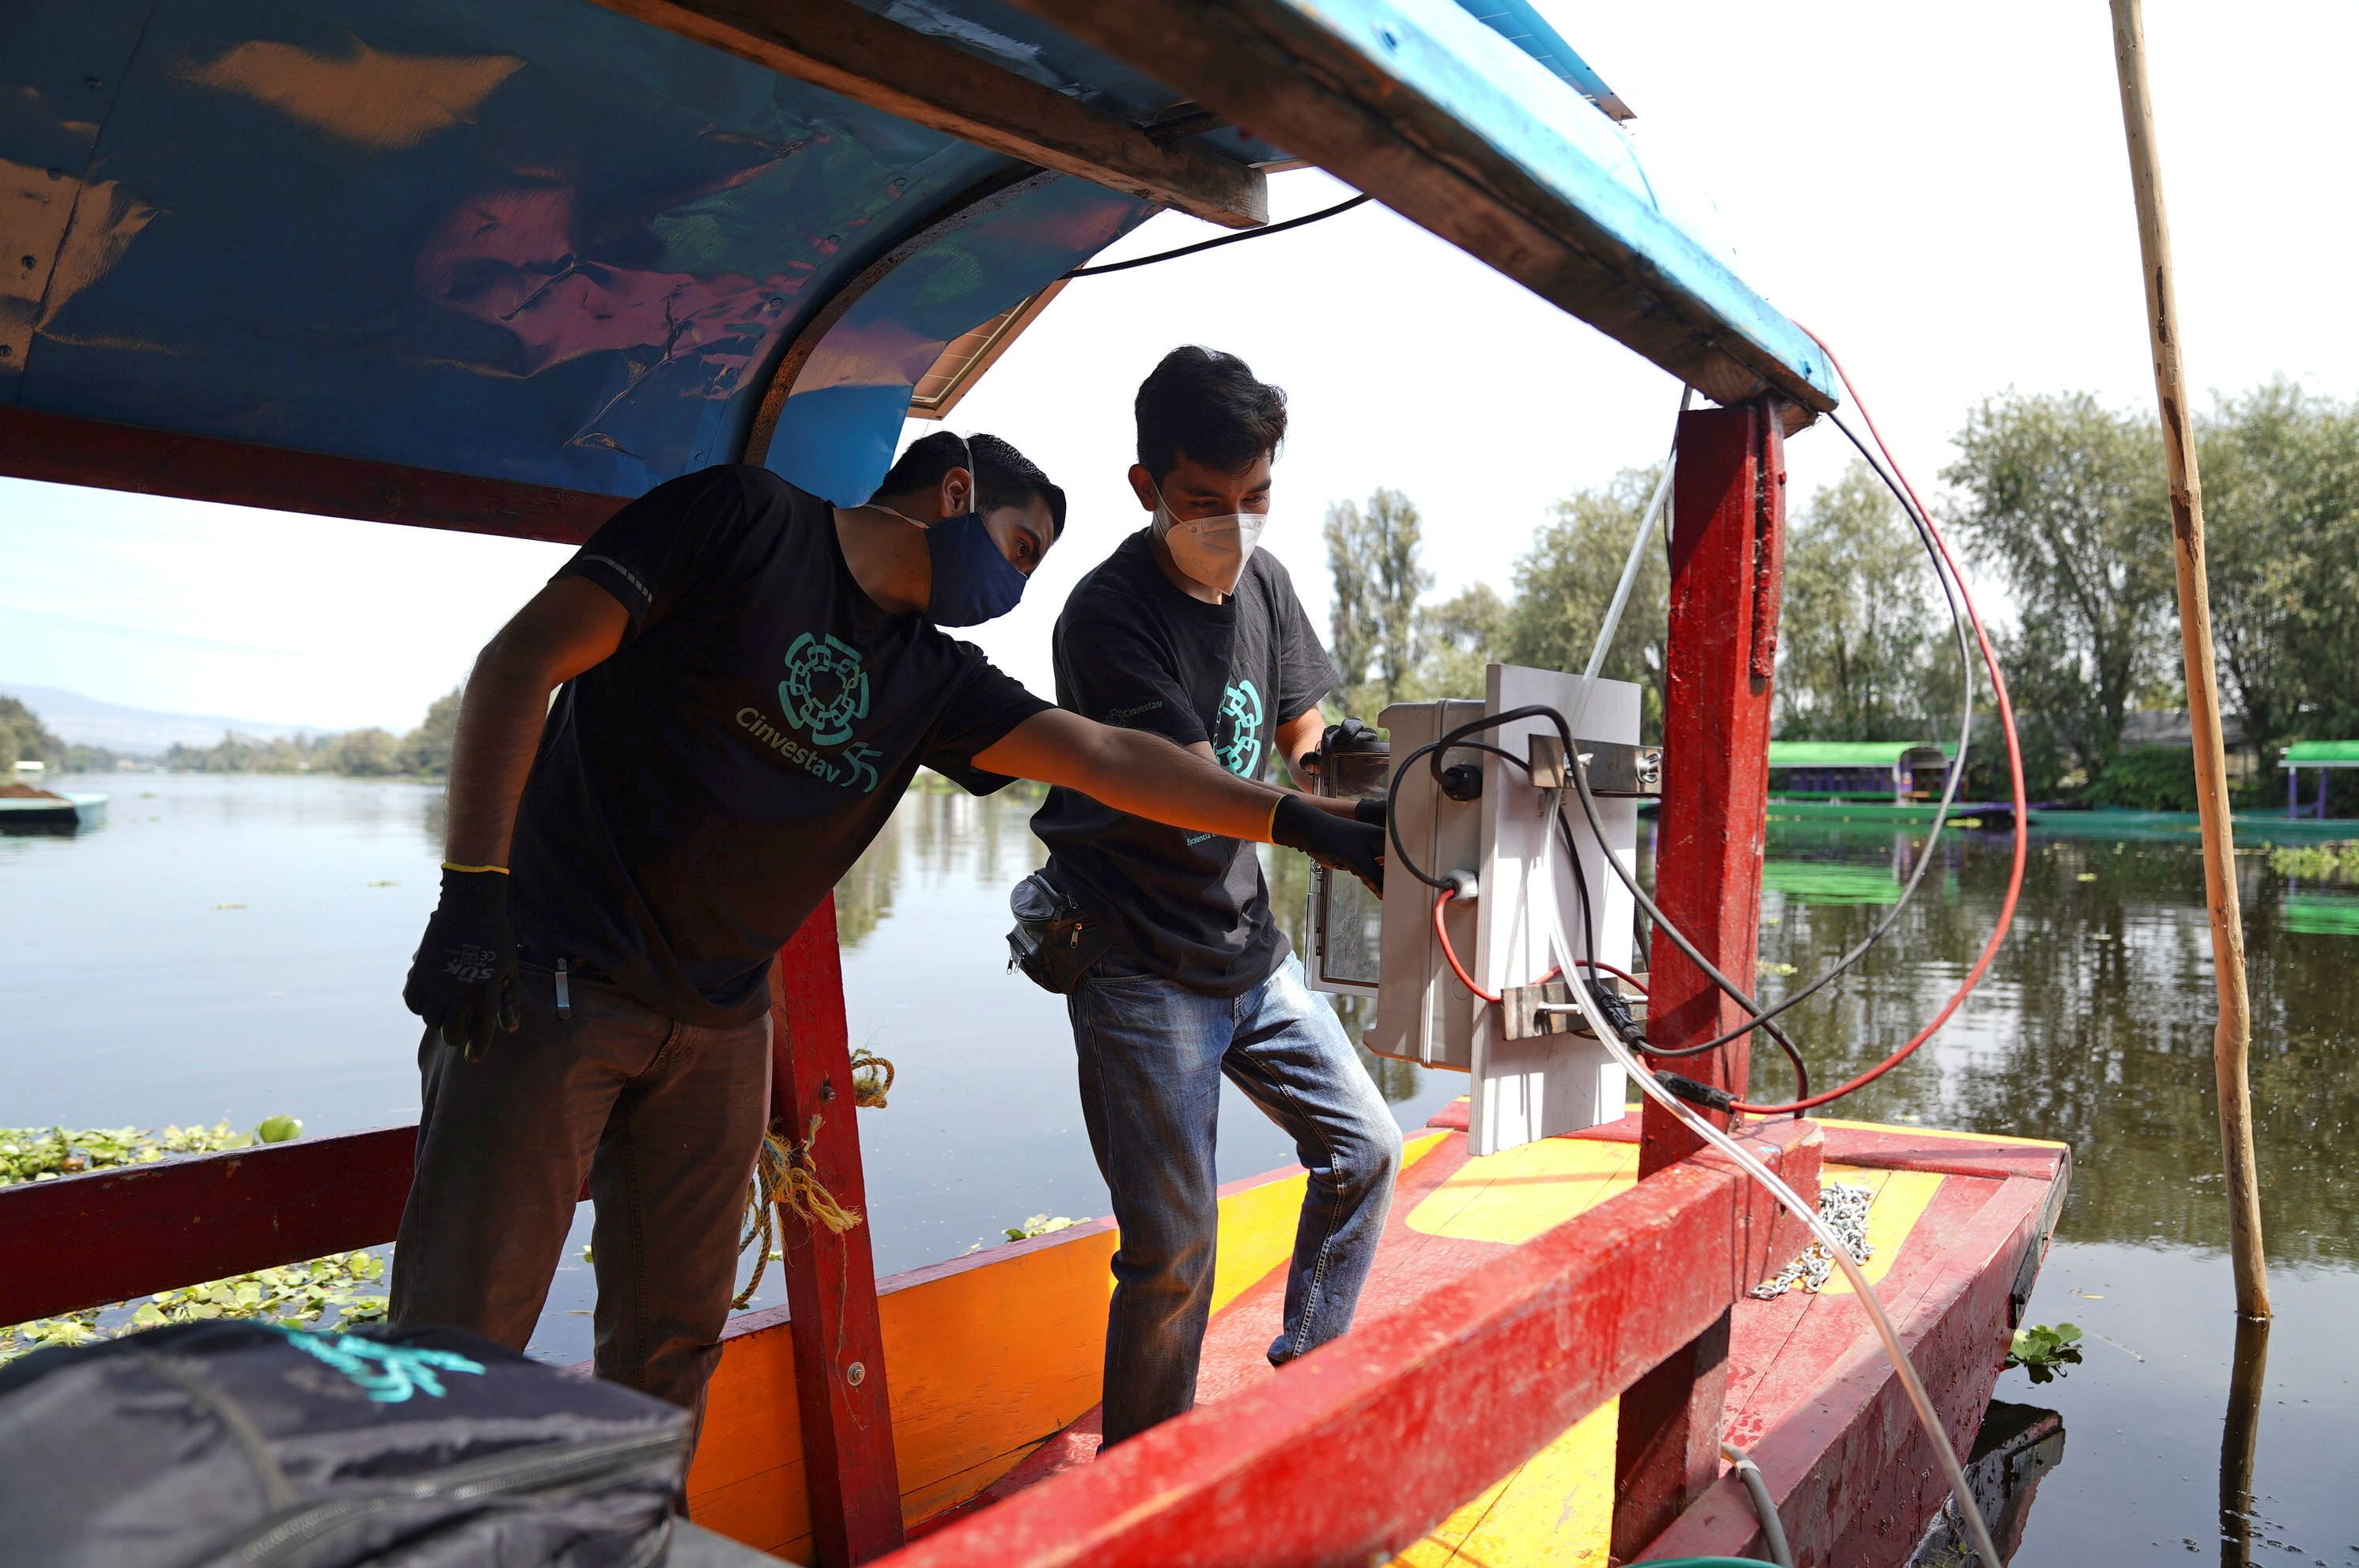 """Members of a team of researchers from the Center for Research and Advanced Studies (Cinvestav), who developed a method that converts solar energy into photovoltaic energy that activates a pump that sends """"nanobubbles"""" into the water, install a pump in a trajinera boat as part of a project to clean the polluted waters at the canals of Xochimilco, in Mexico City, Mexico August 20, 2021. REUTERS/Toya Sarno Jordan"""